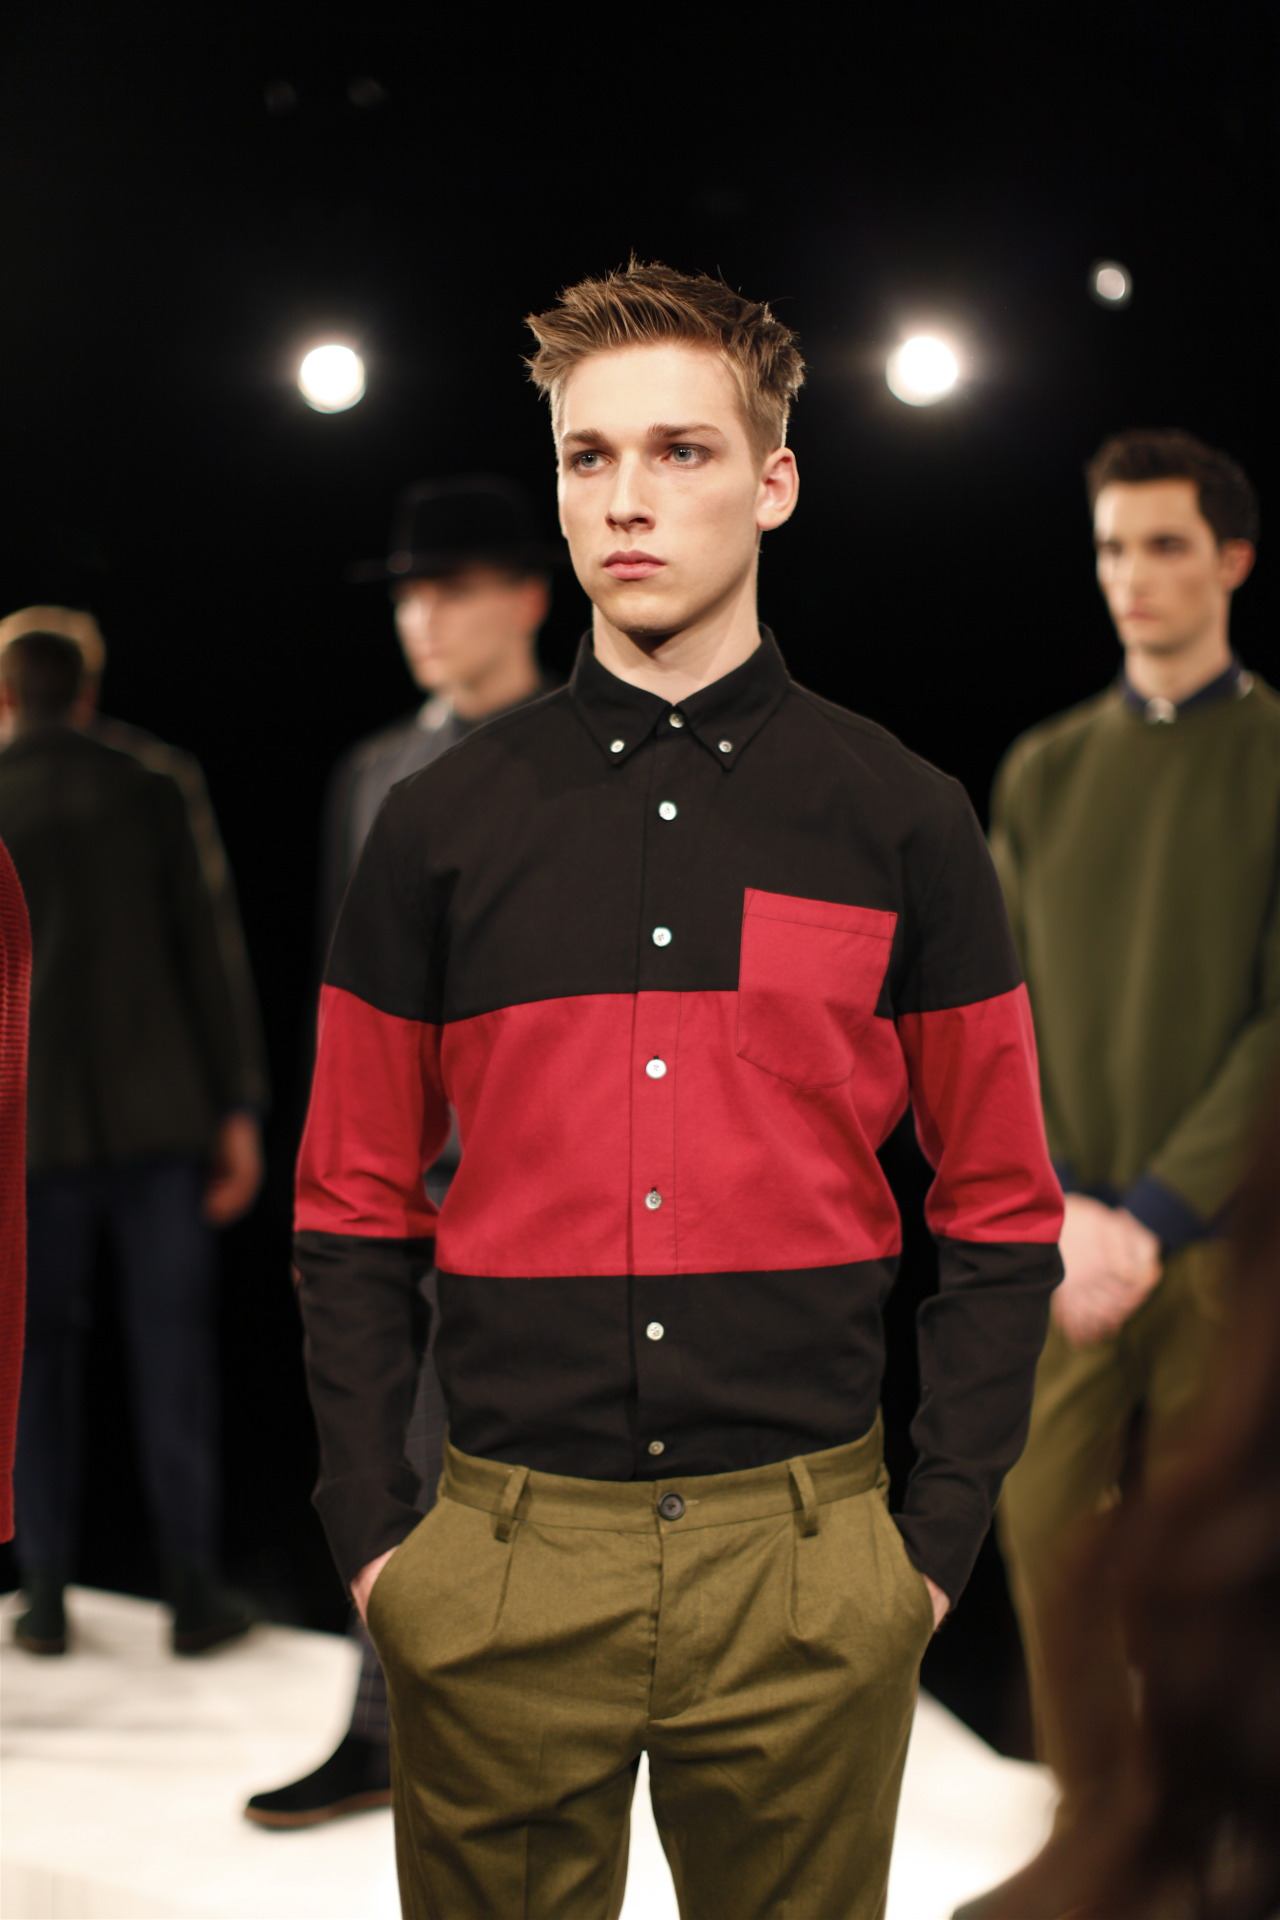 New York Fashion Week Timo Weiland Men's F/W 2013 Love this color block shirt! Find us: FACEBOOK | TWITTER | BLOGLOVIN | PINTEREST | LOOKBOOK